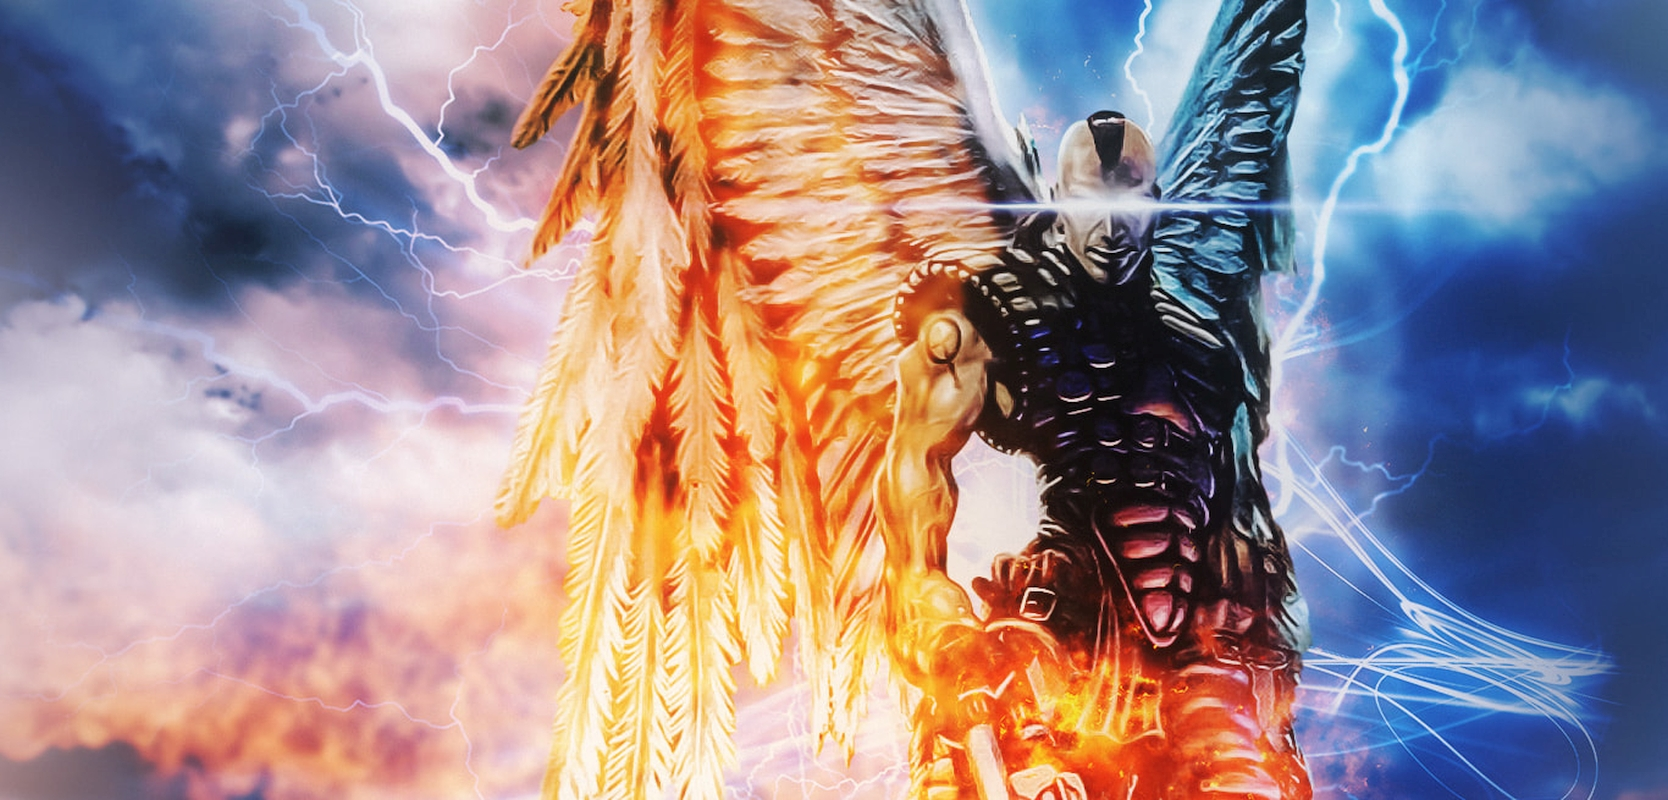 GOG Adds Multiple Titles From Ziggurat Interactive Including Killing Time And Requiem: Avenging Angel